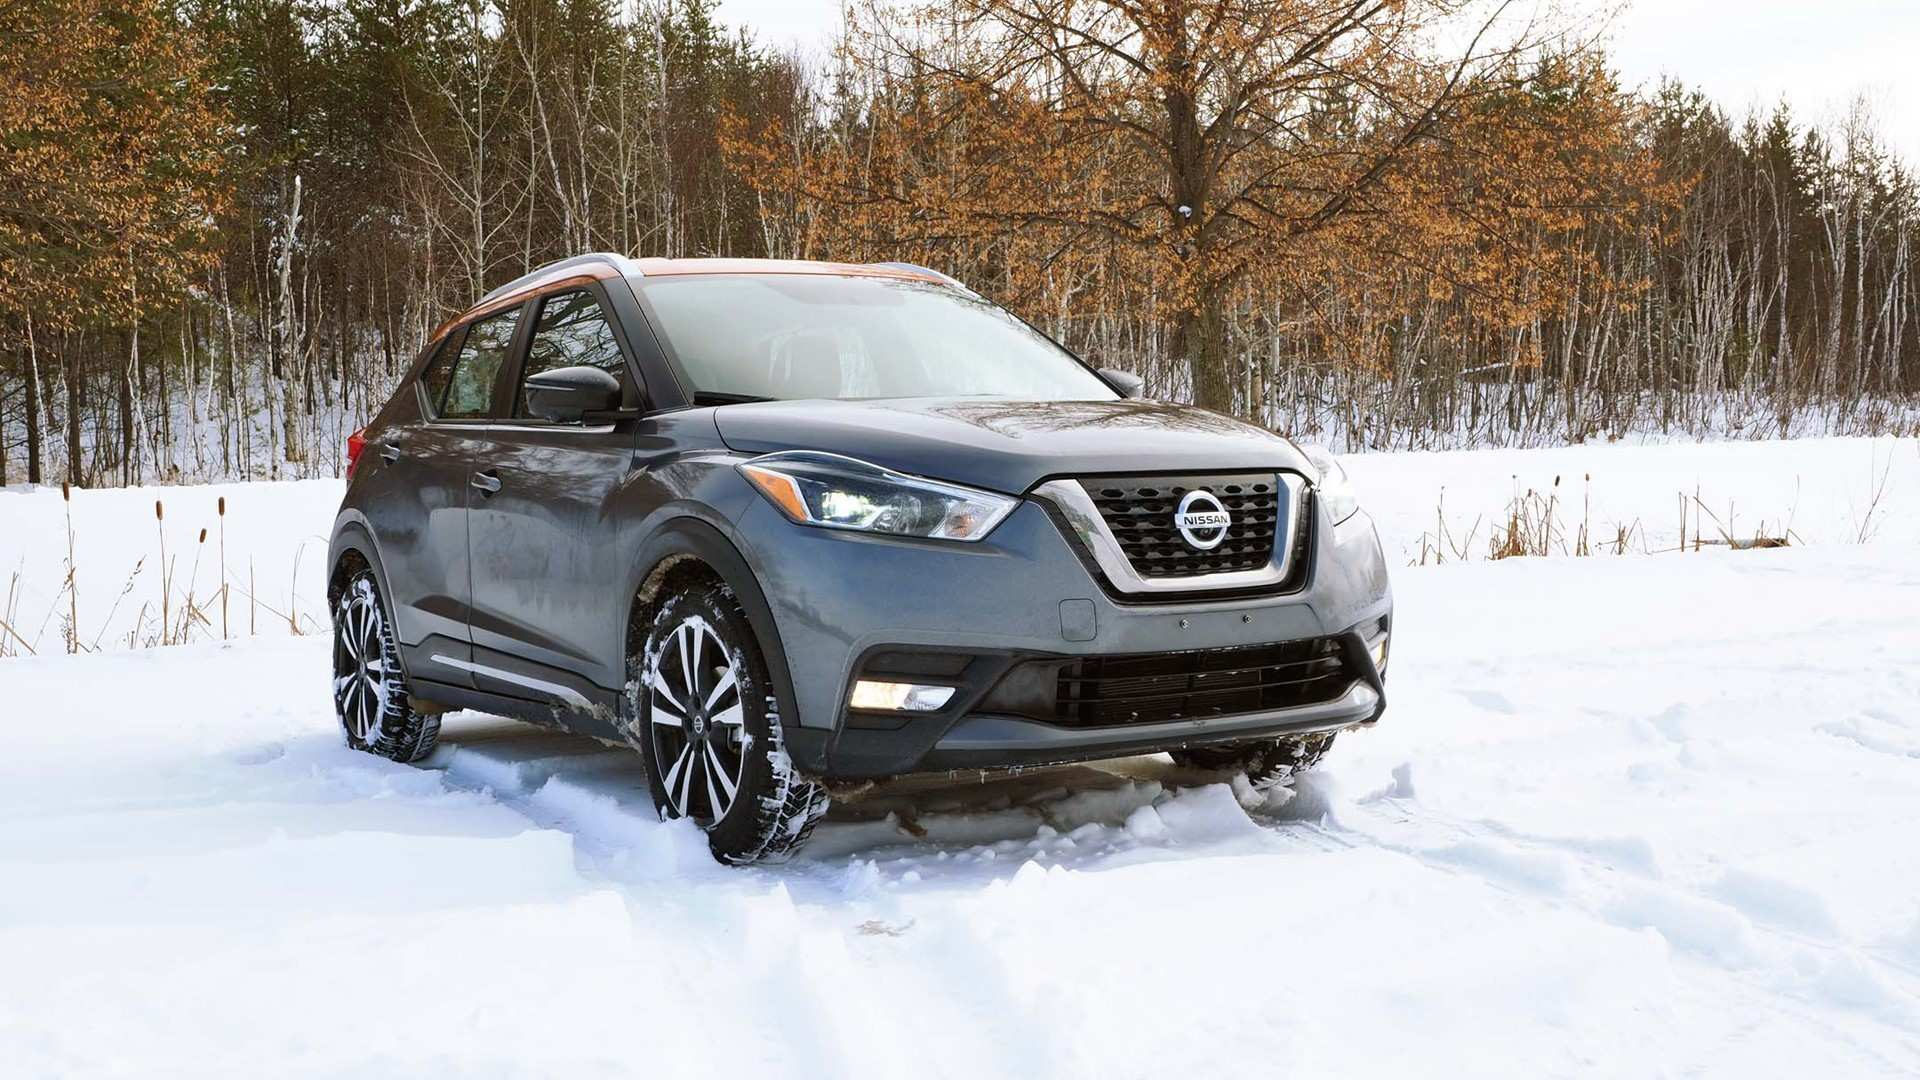 91 Best Review 2019 Nissan Kicks Review Price And Release Date Ratings with 2019 Nissan Kicks Review Price And Release Date